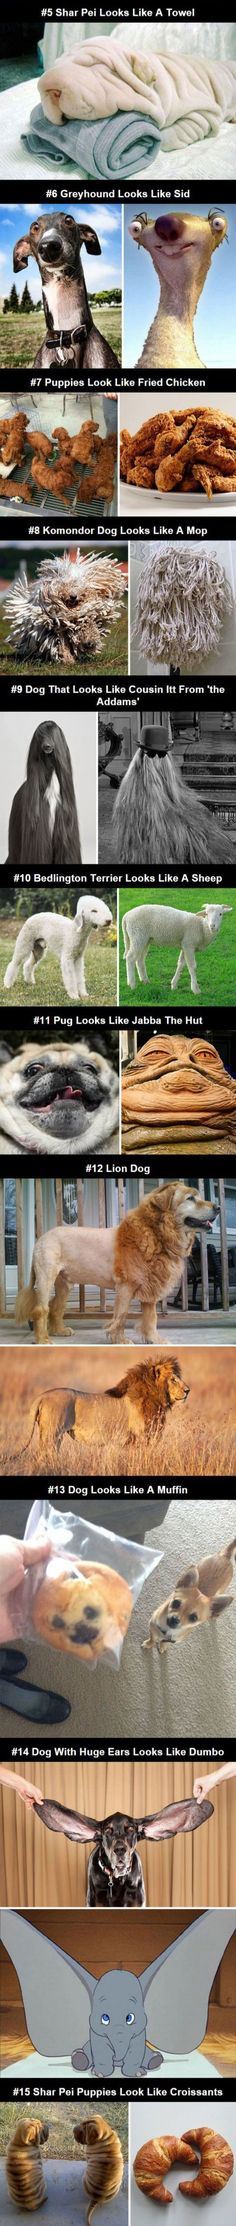 top 50 #funny humor Animals, Quotes and picture 2015